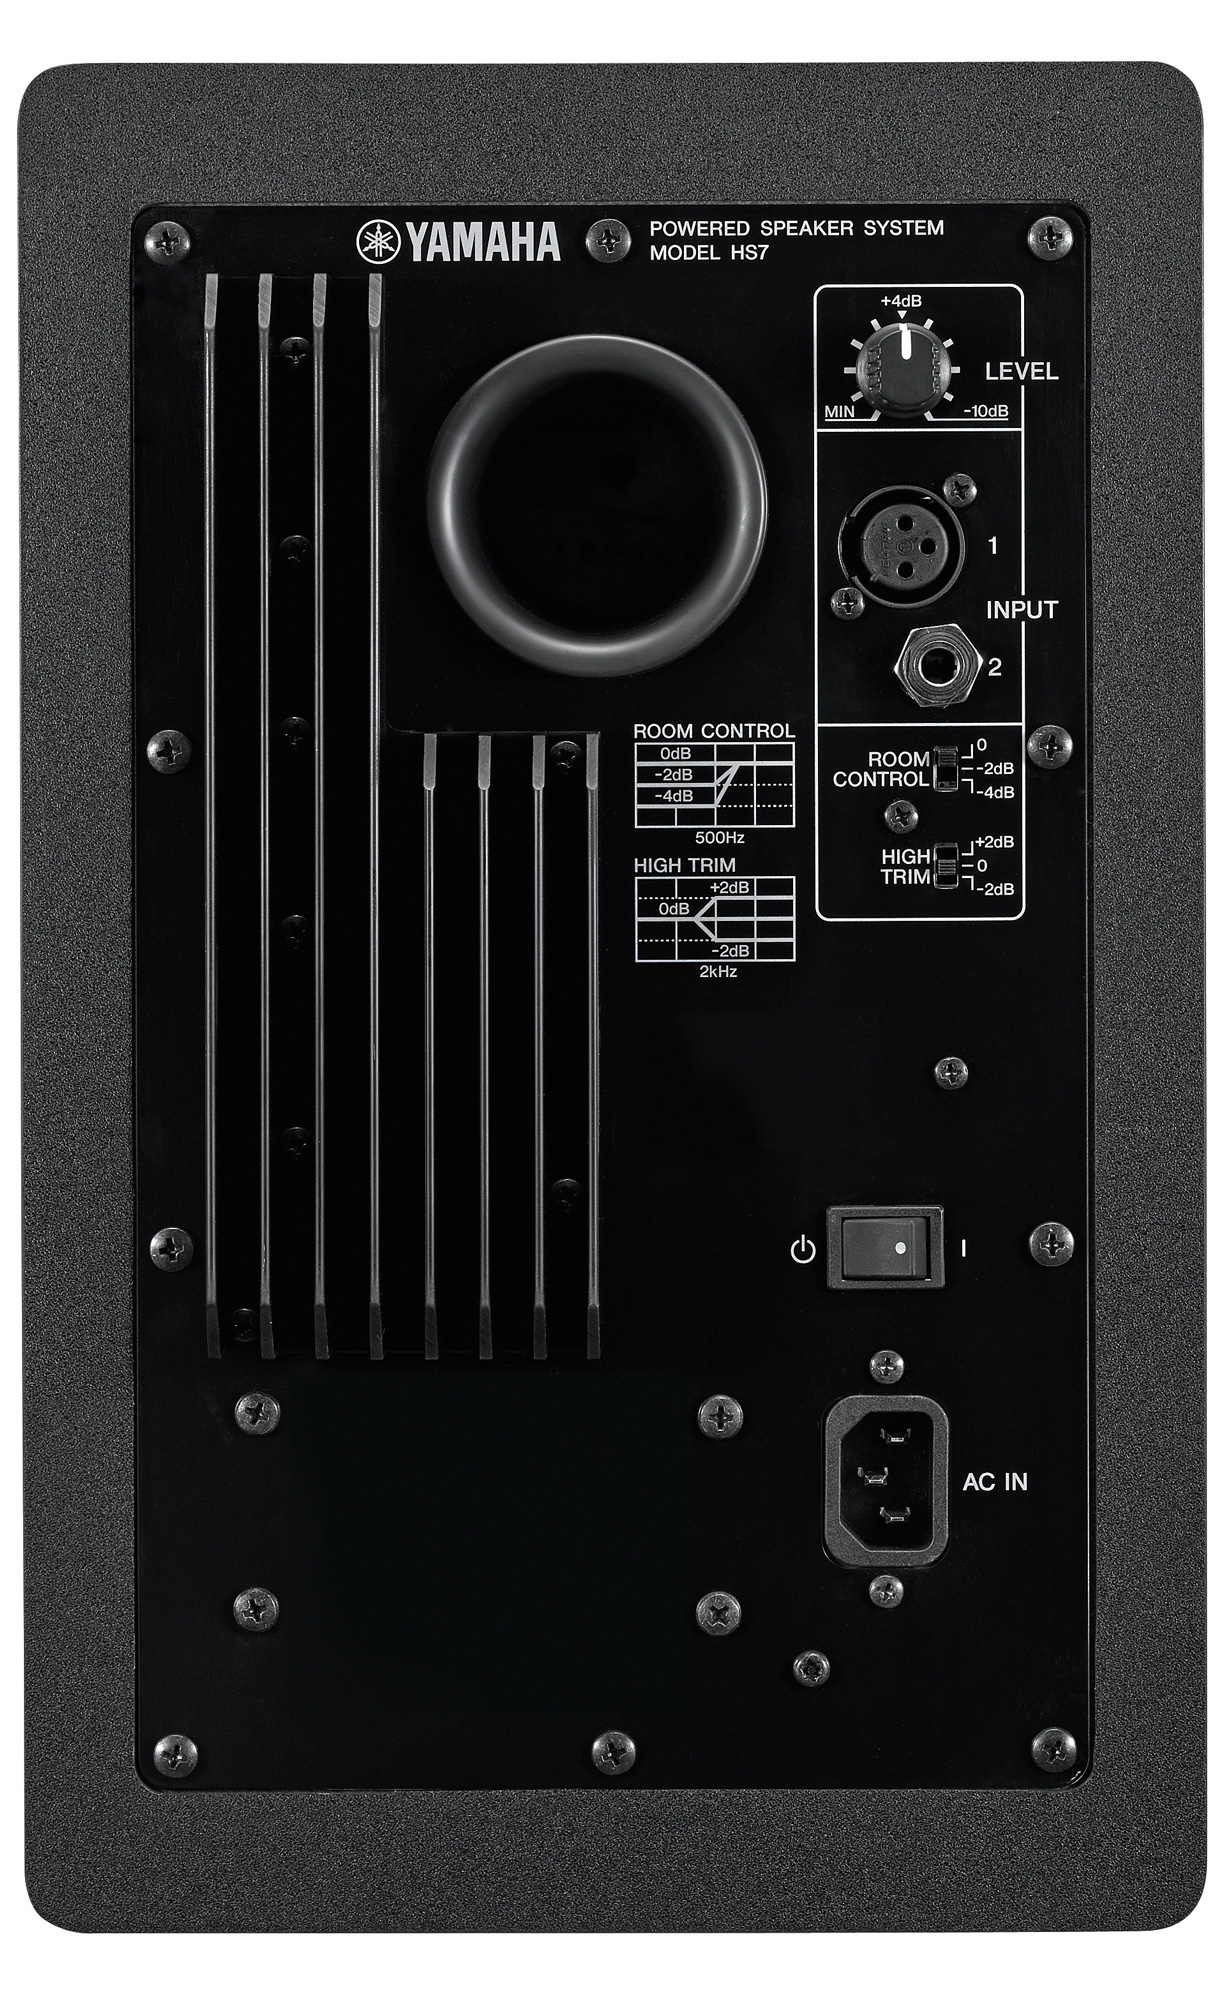 Image of the rear of the Yamaha HS7 studio monitor.